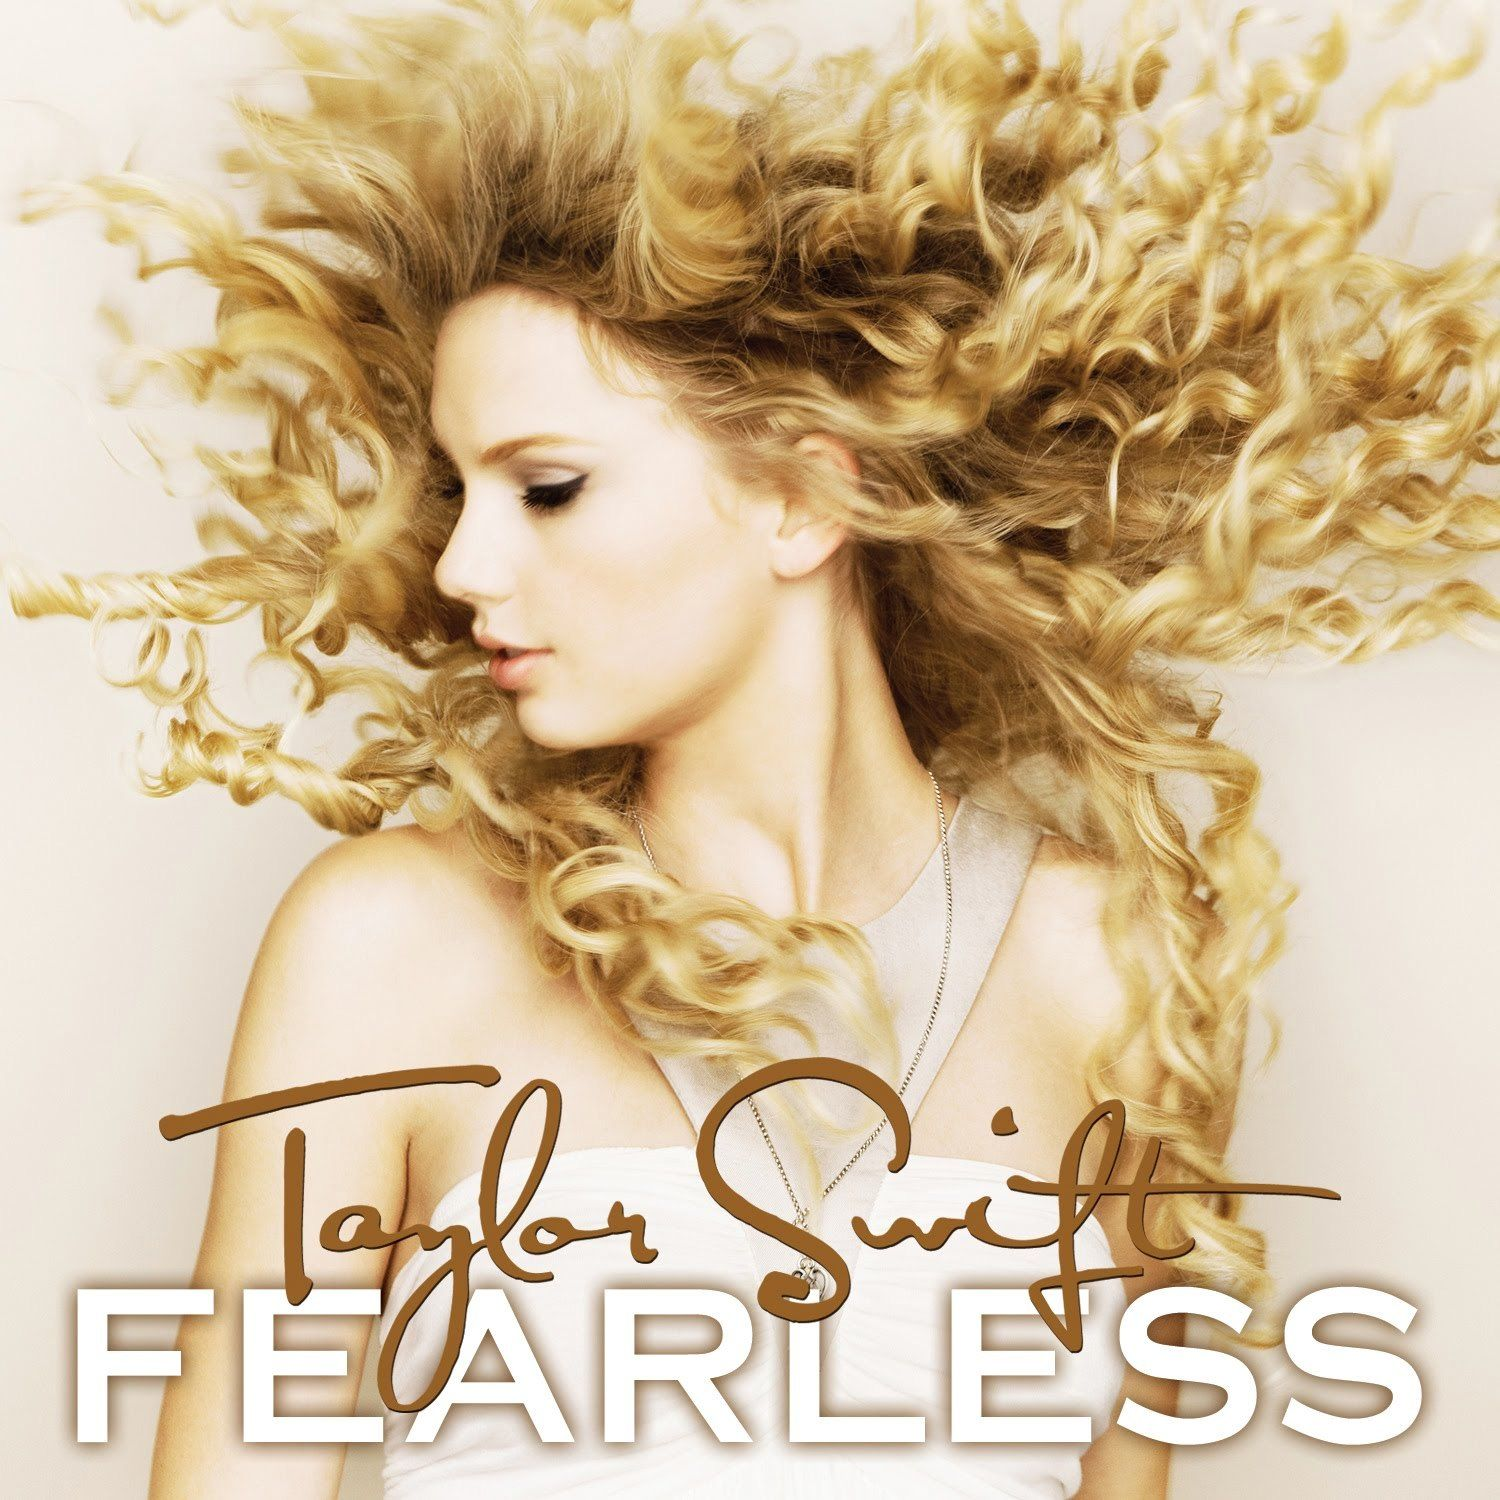 Taylor Swift - Fearless album cover